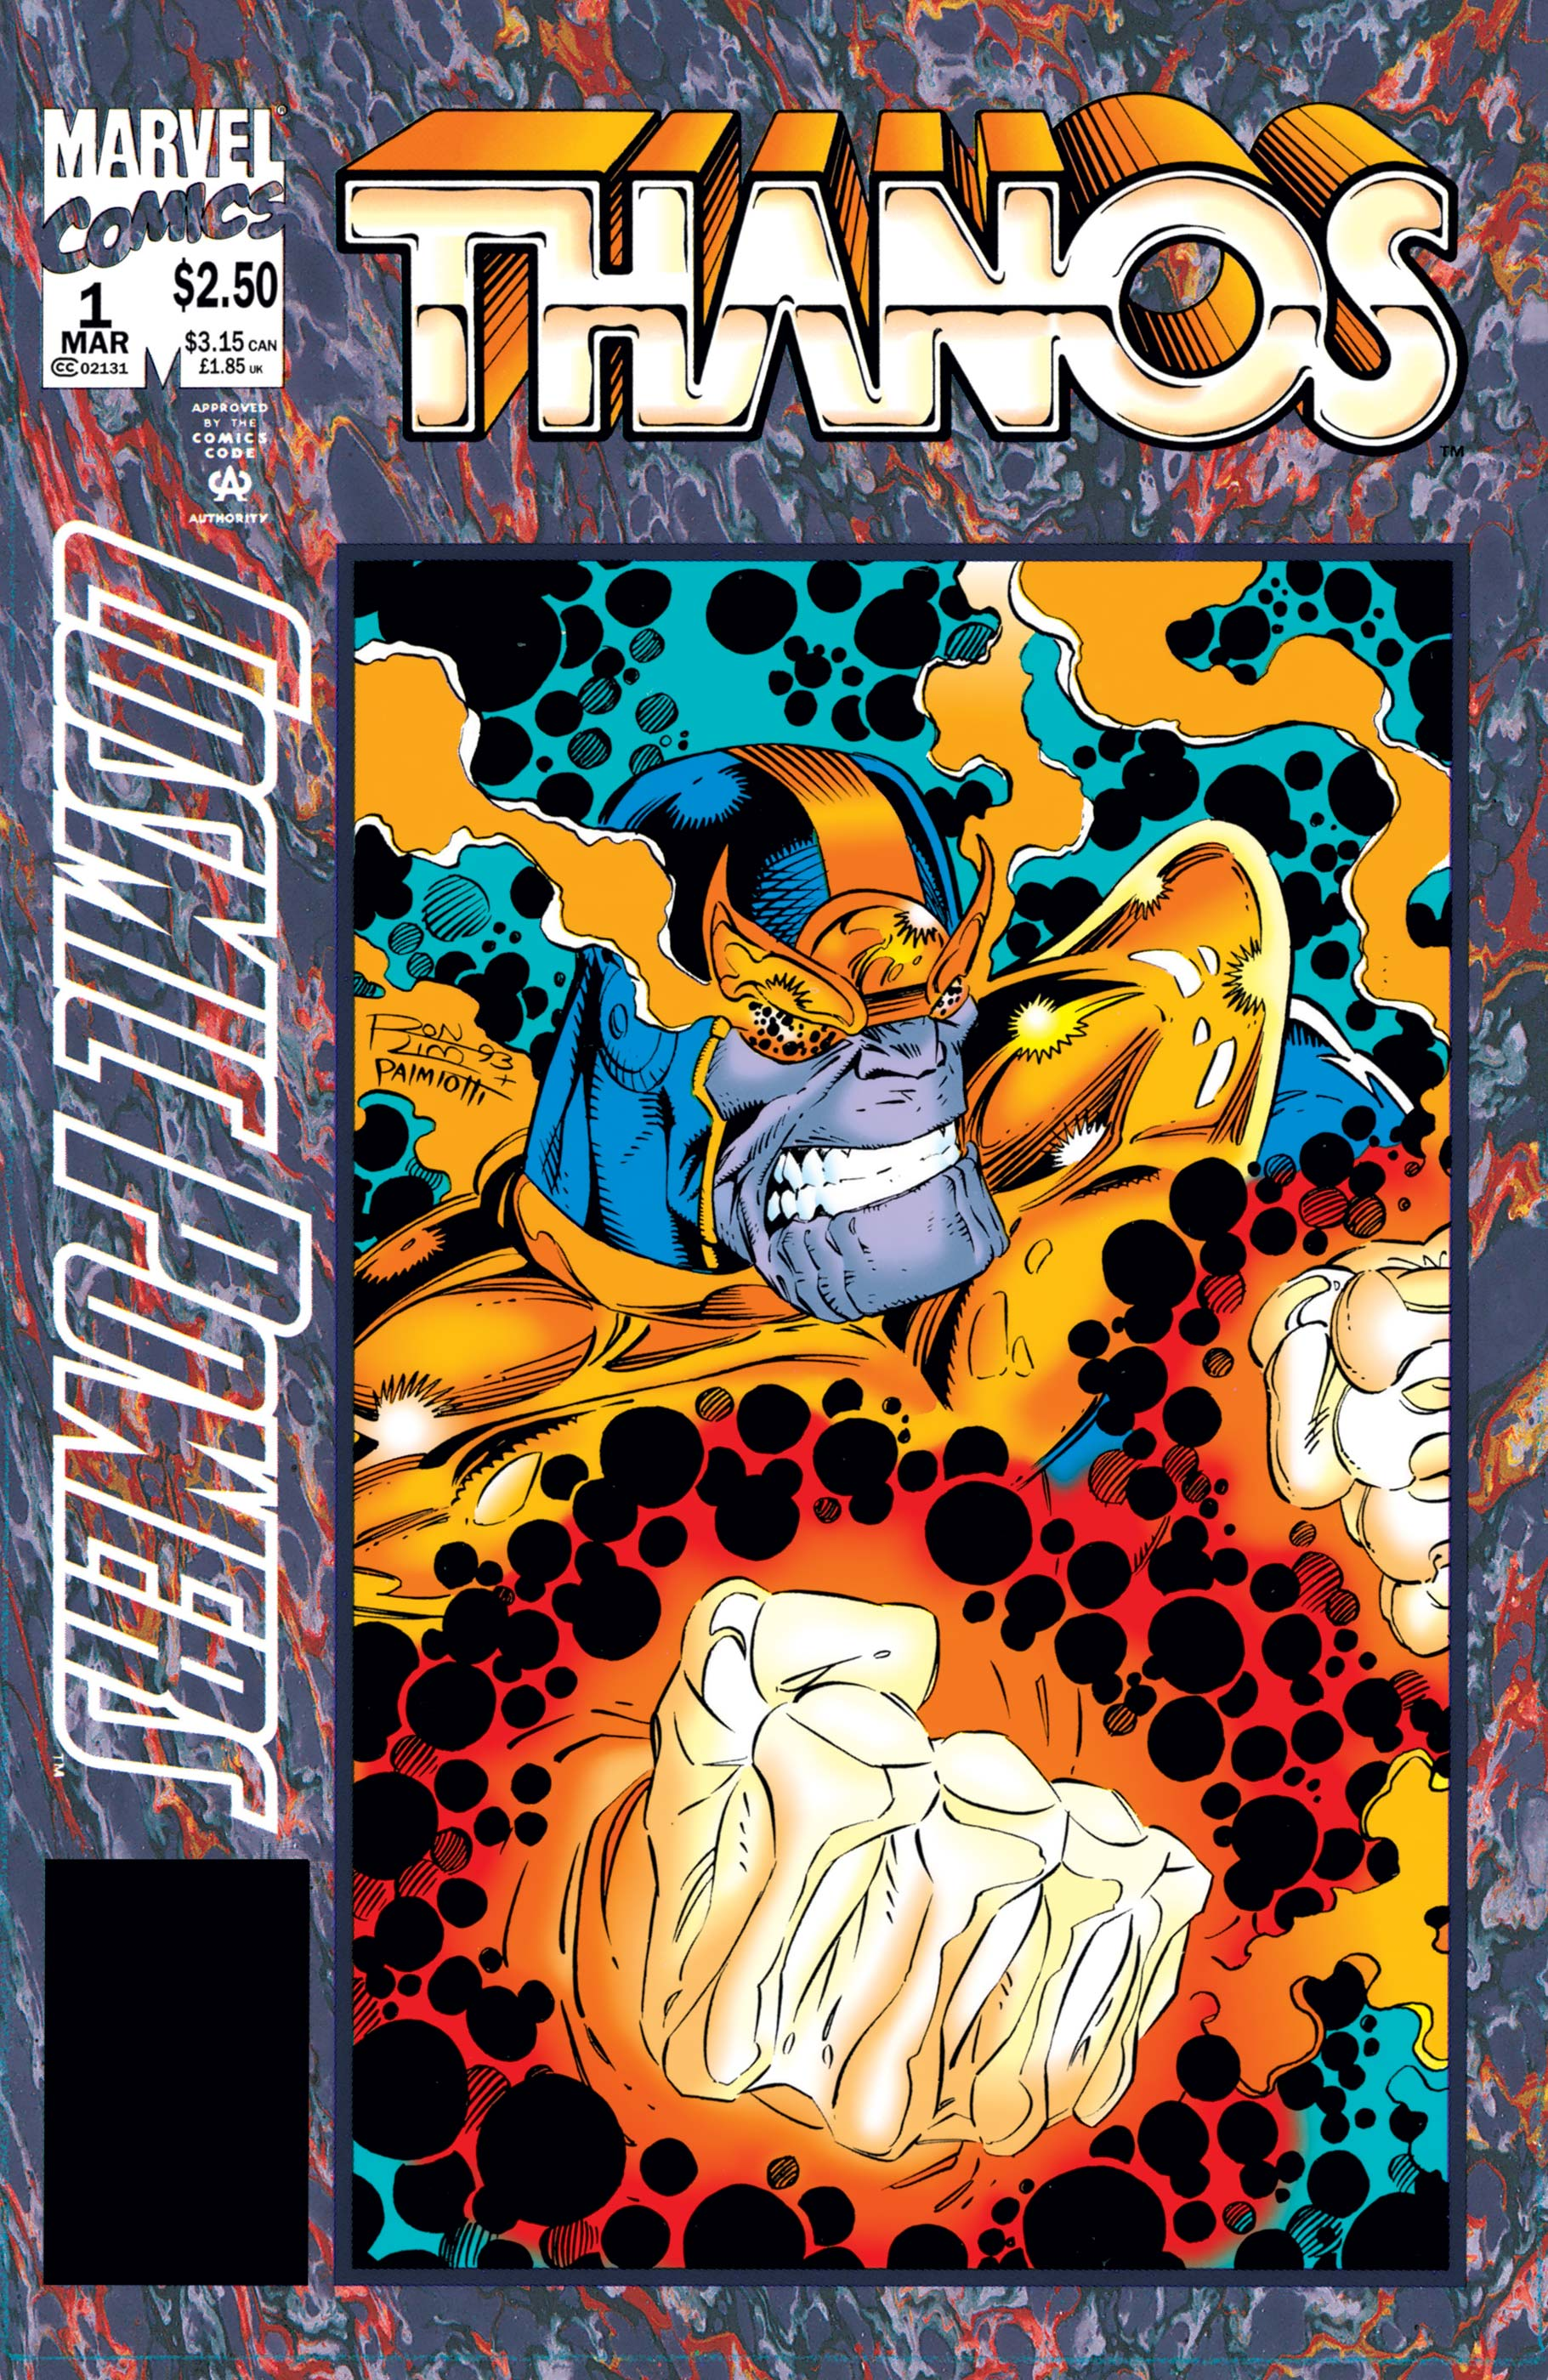 Cosmic Powers (1994) #1